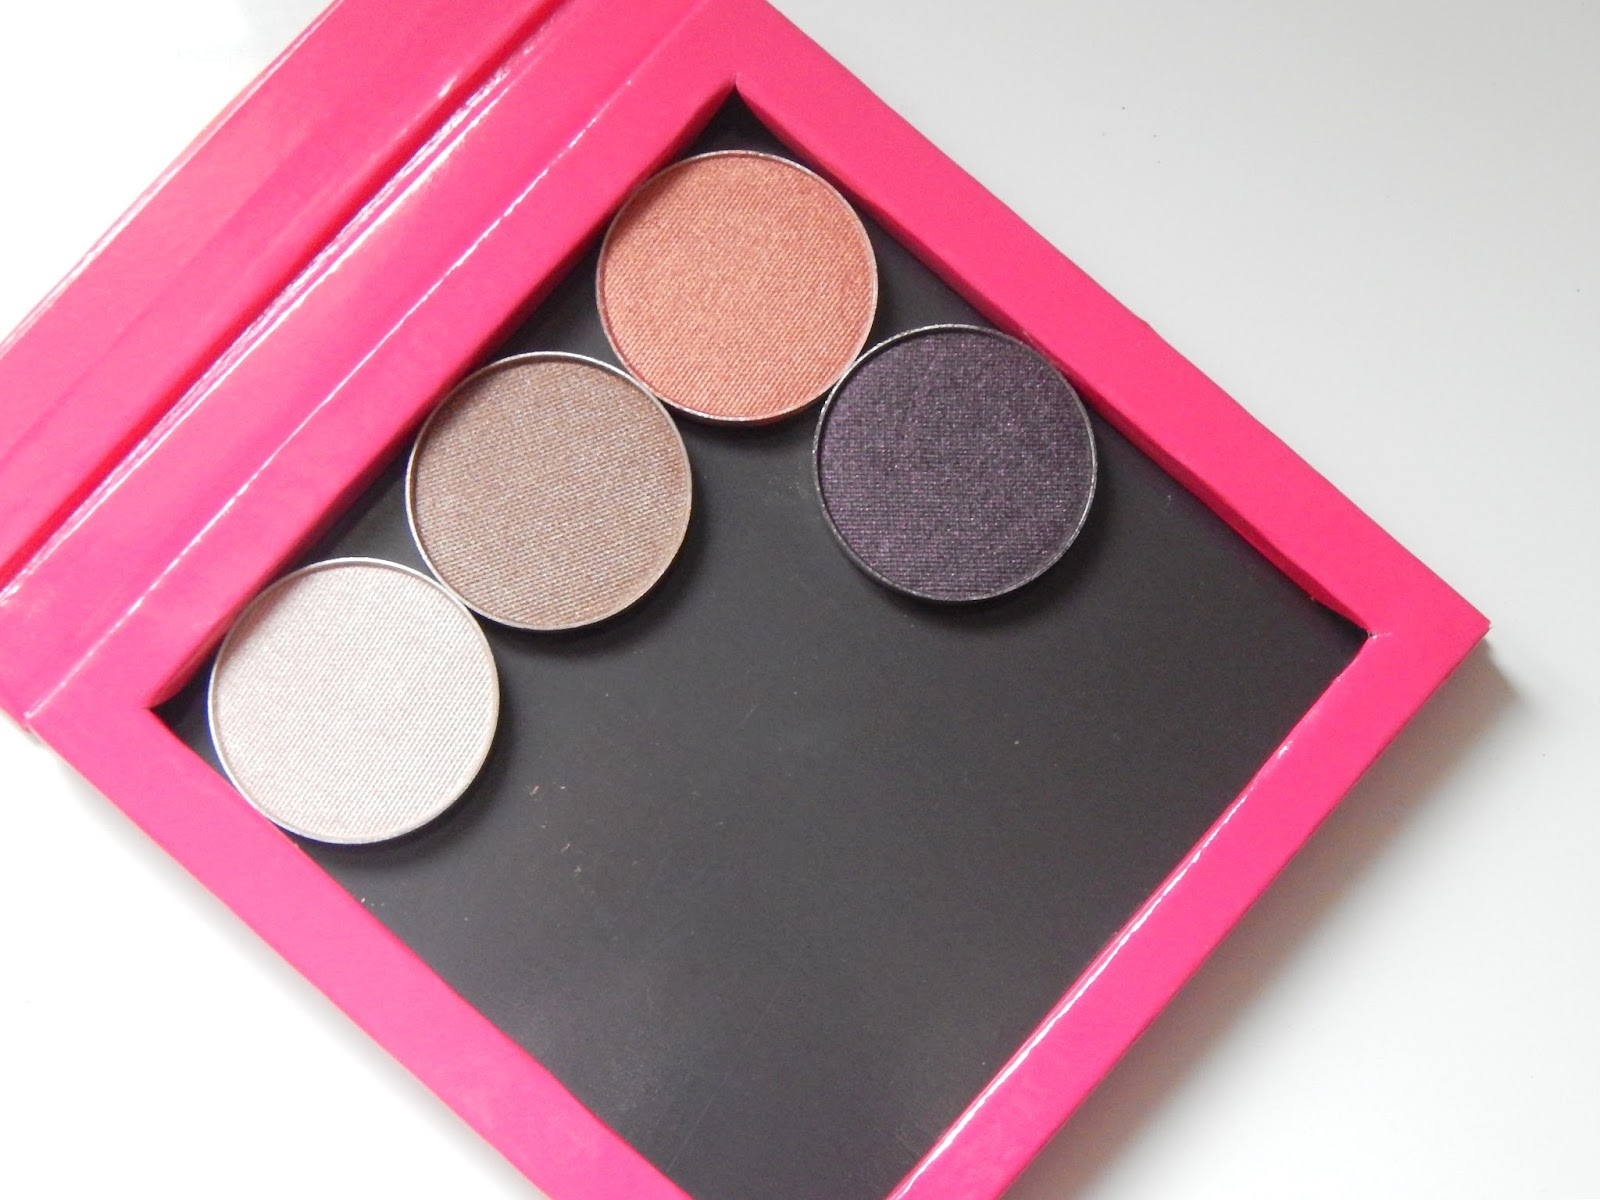 Makeup Geek Eyeshadows in Cosmopolitan, homecoming, drama queen and shimma shimma and Z palette